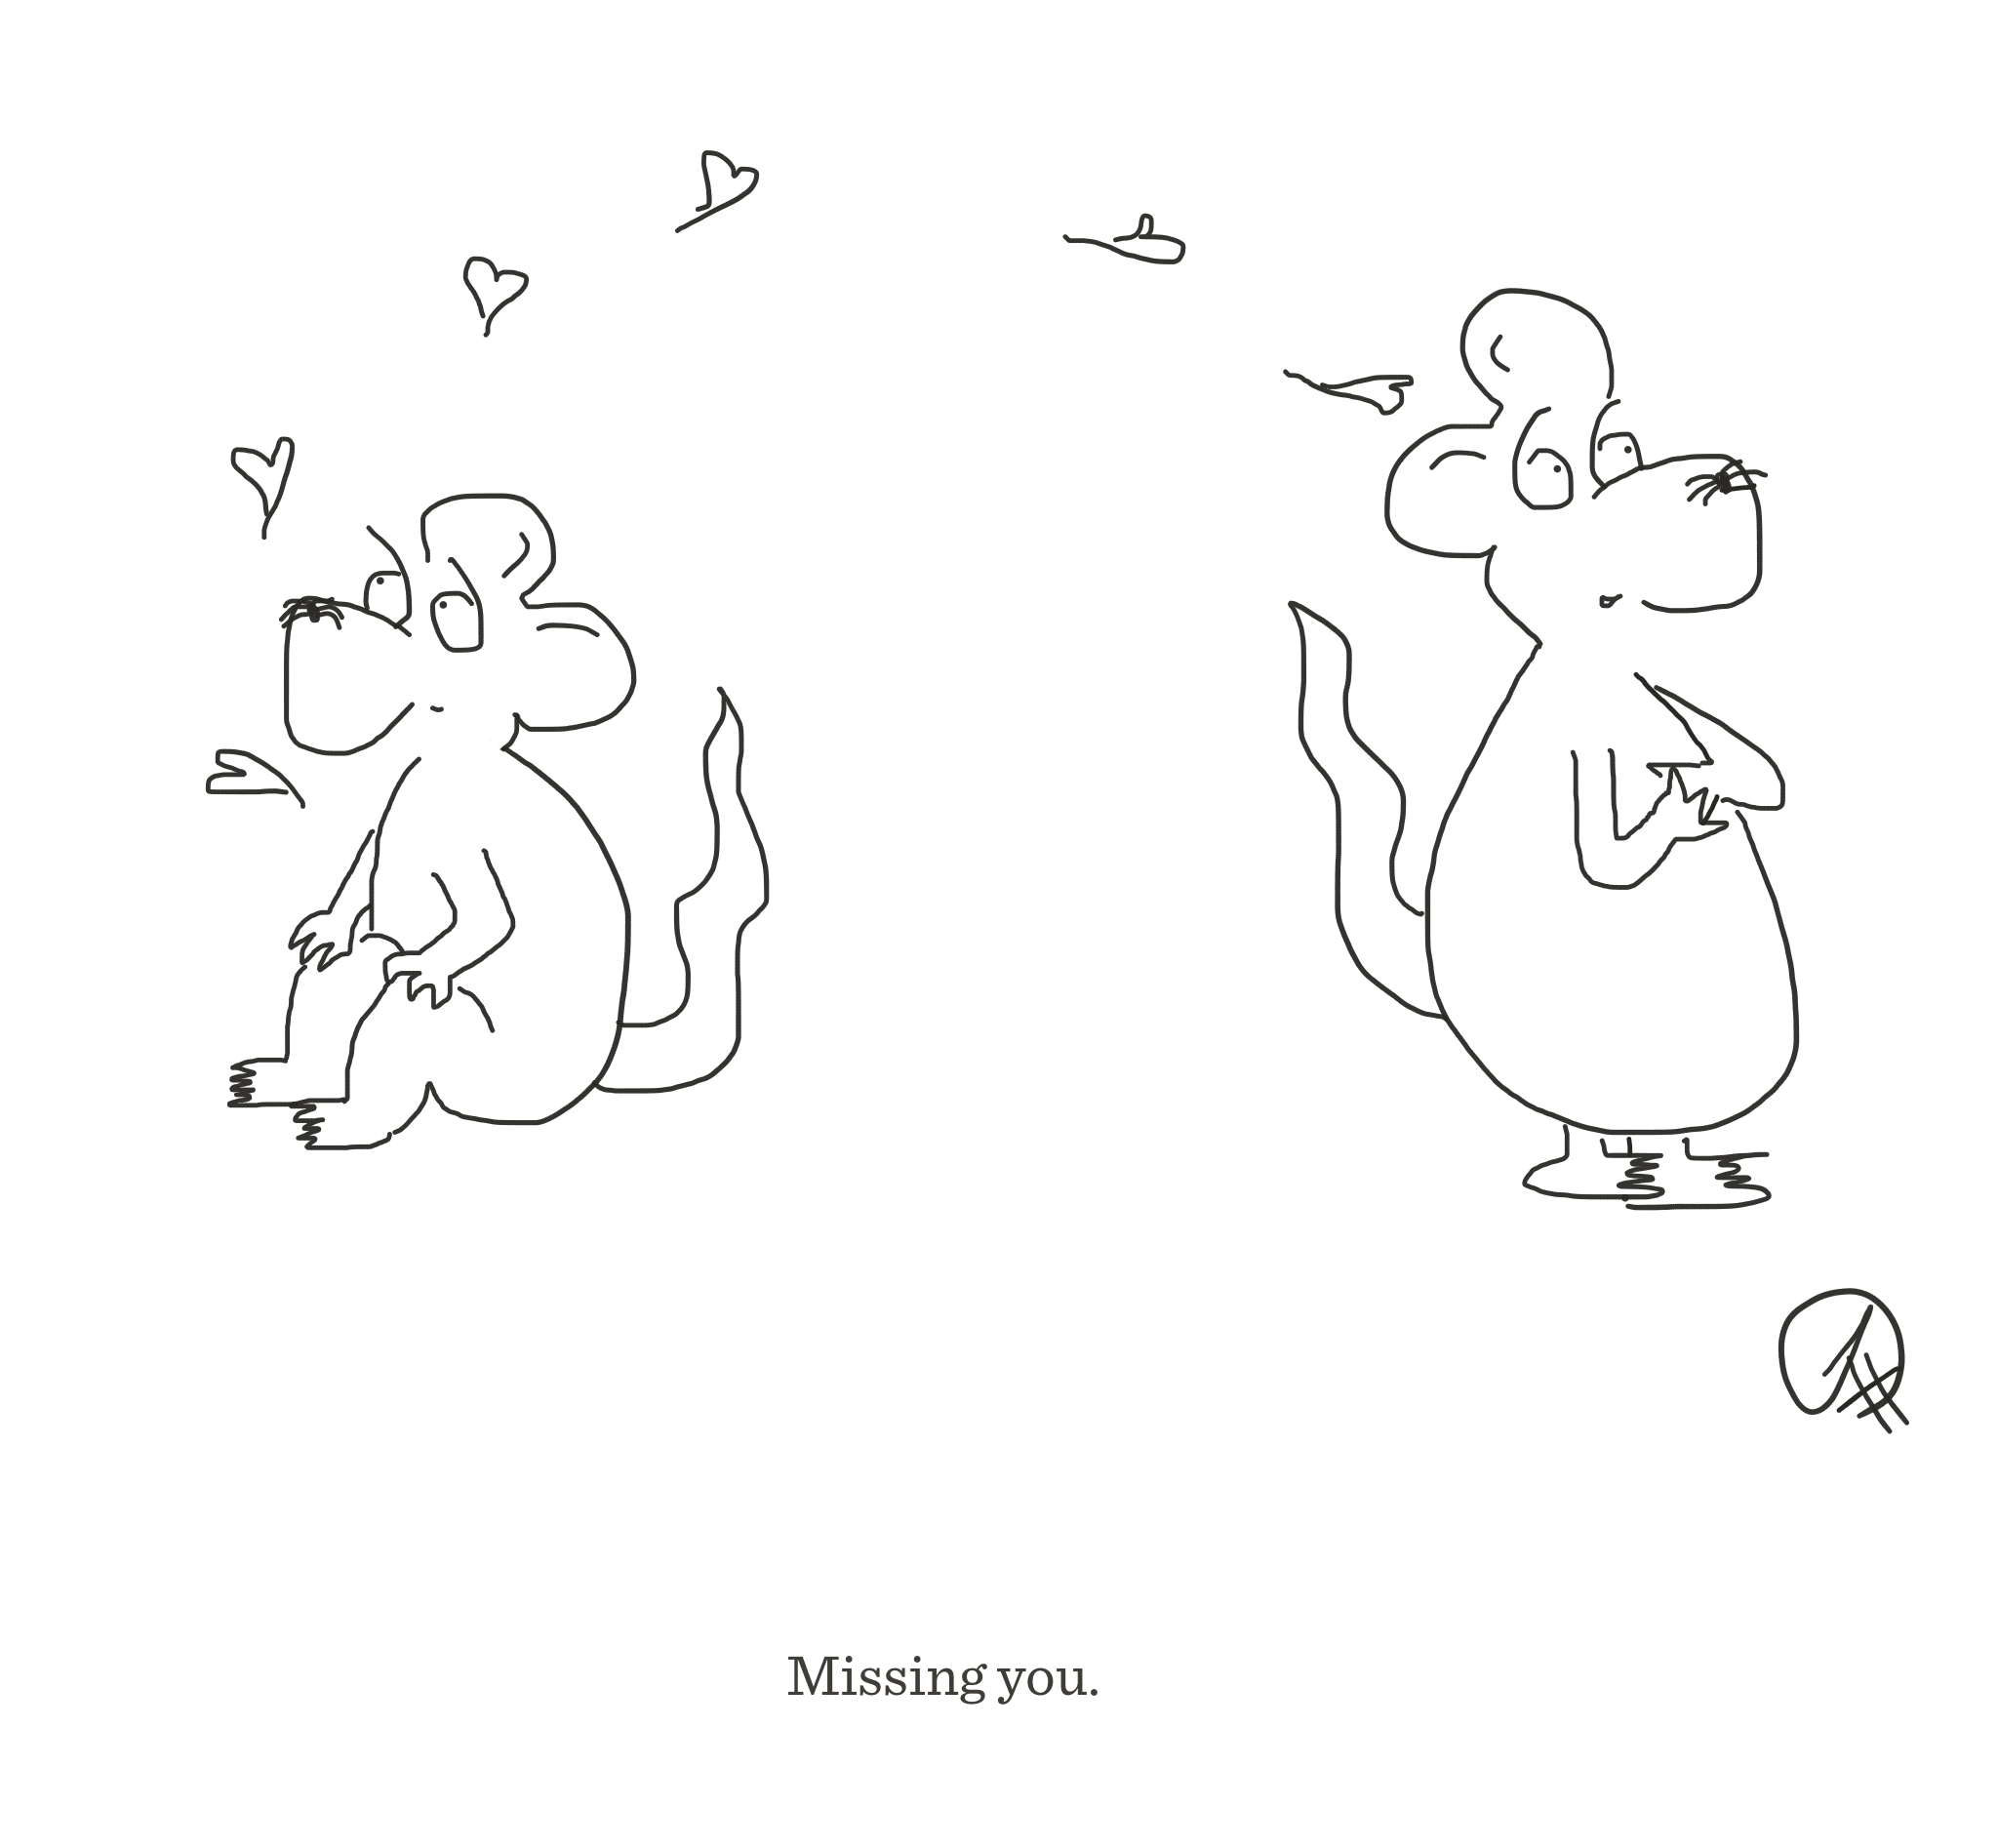 Missing you, The Happy Rat cartoon